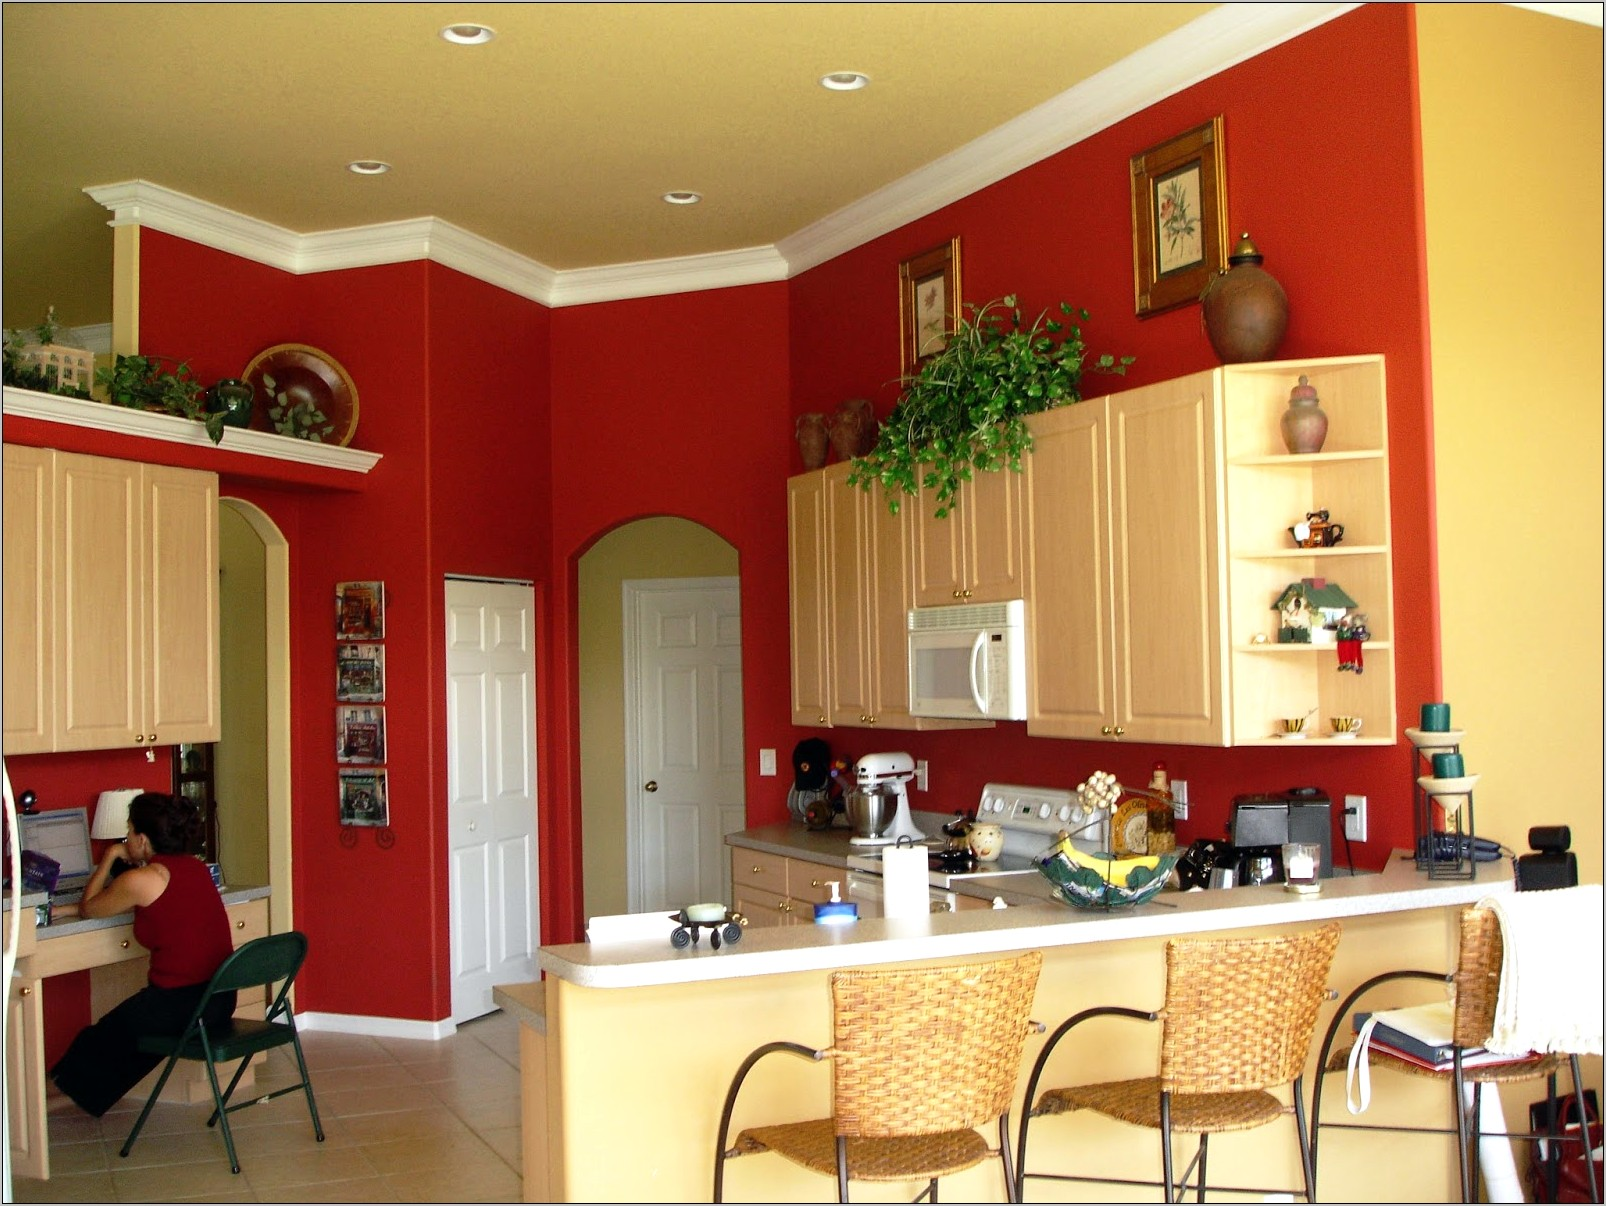 Decorating With Red Walls In The Kitchen